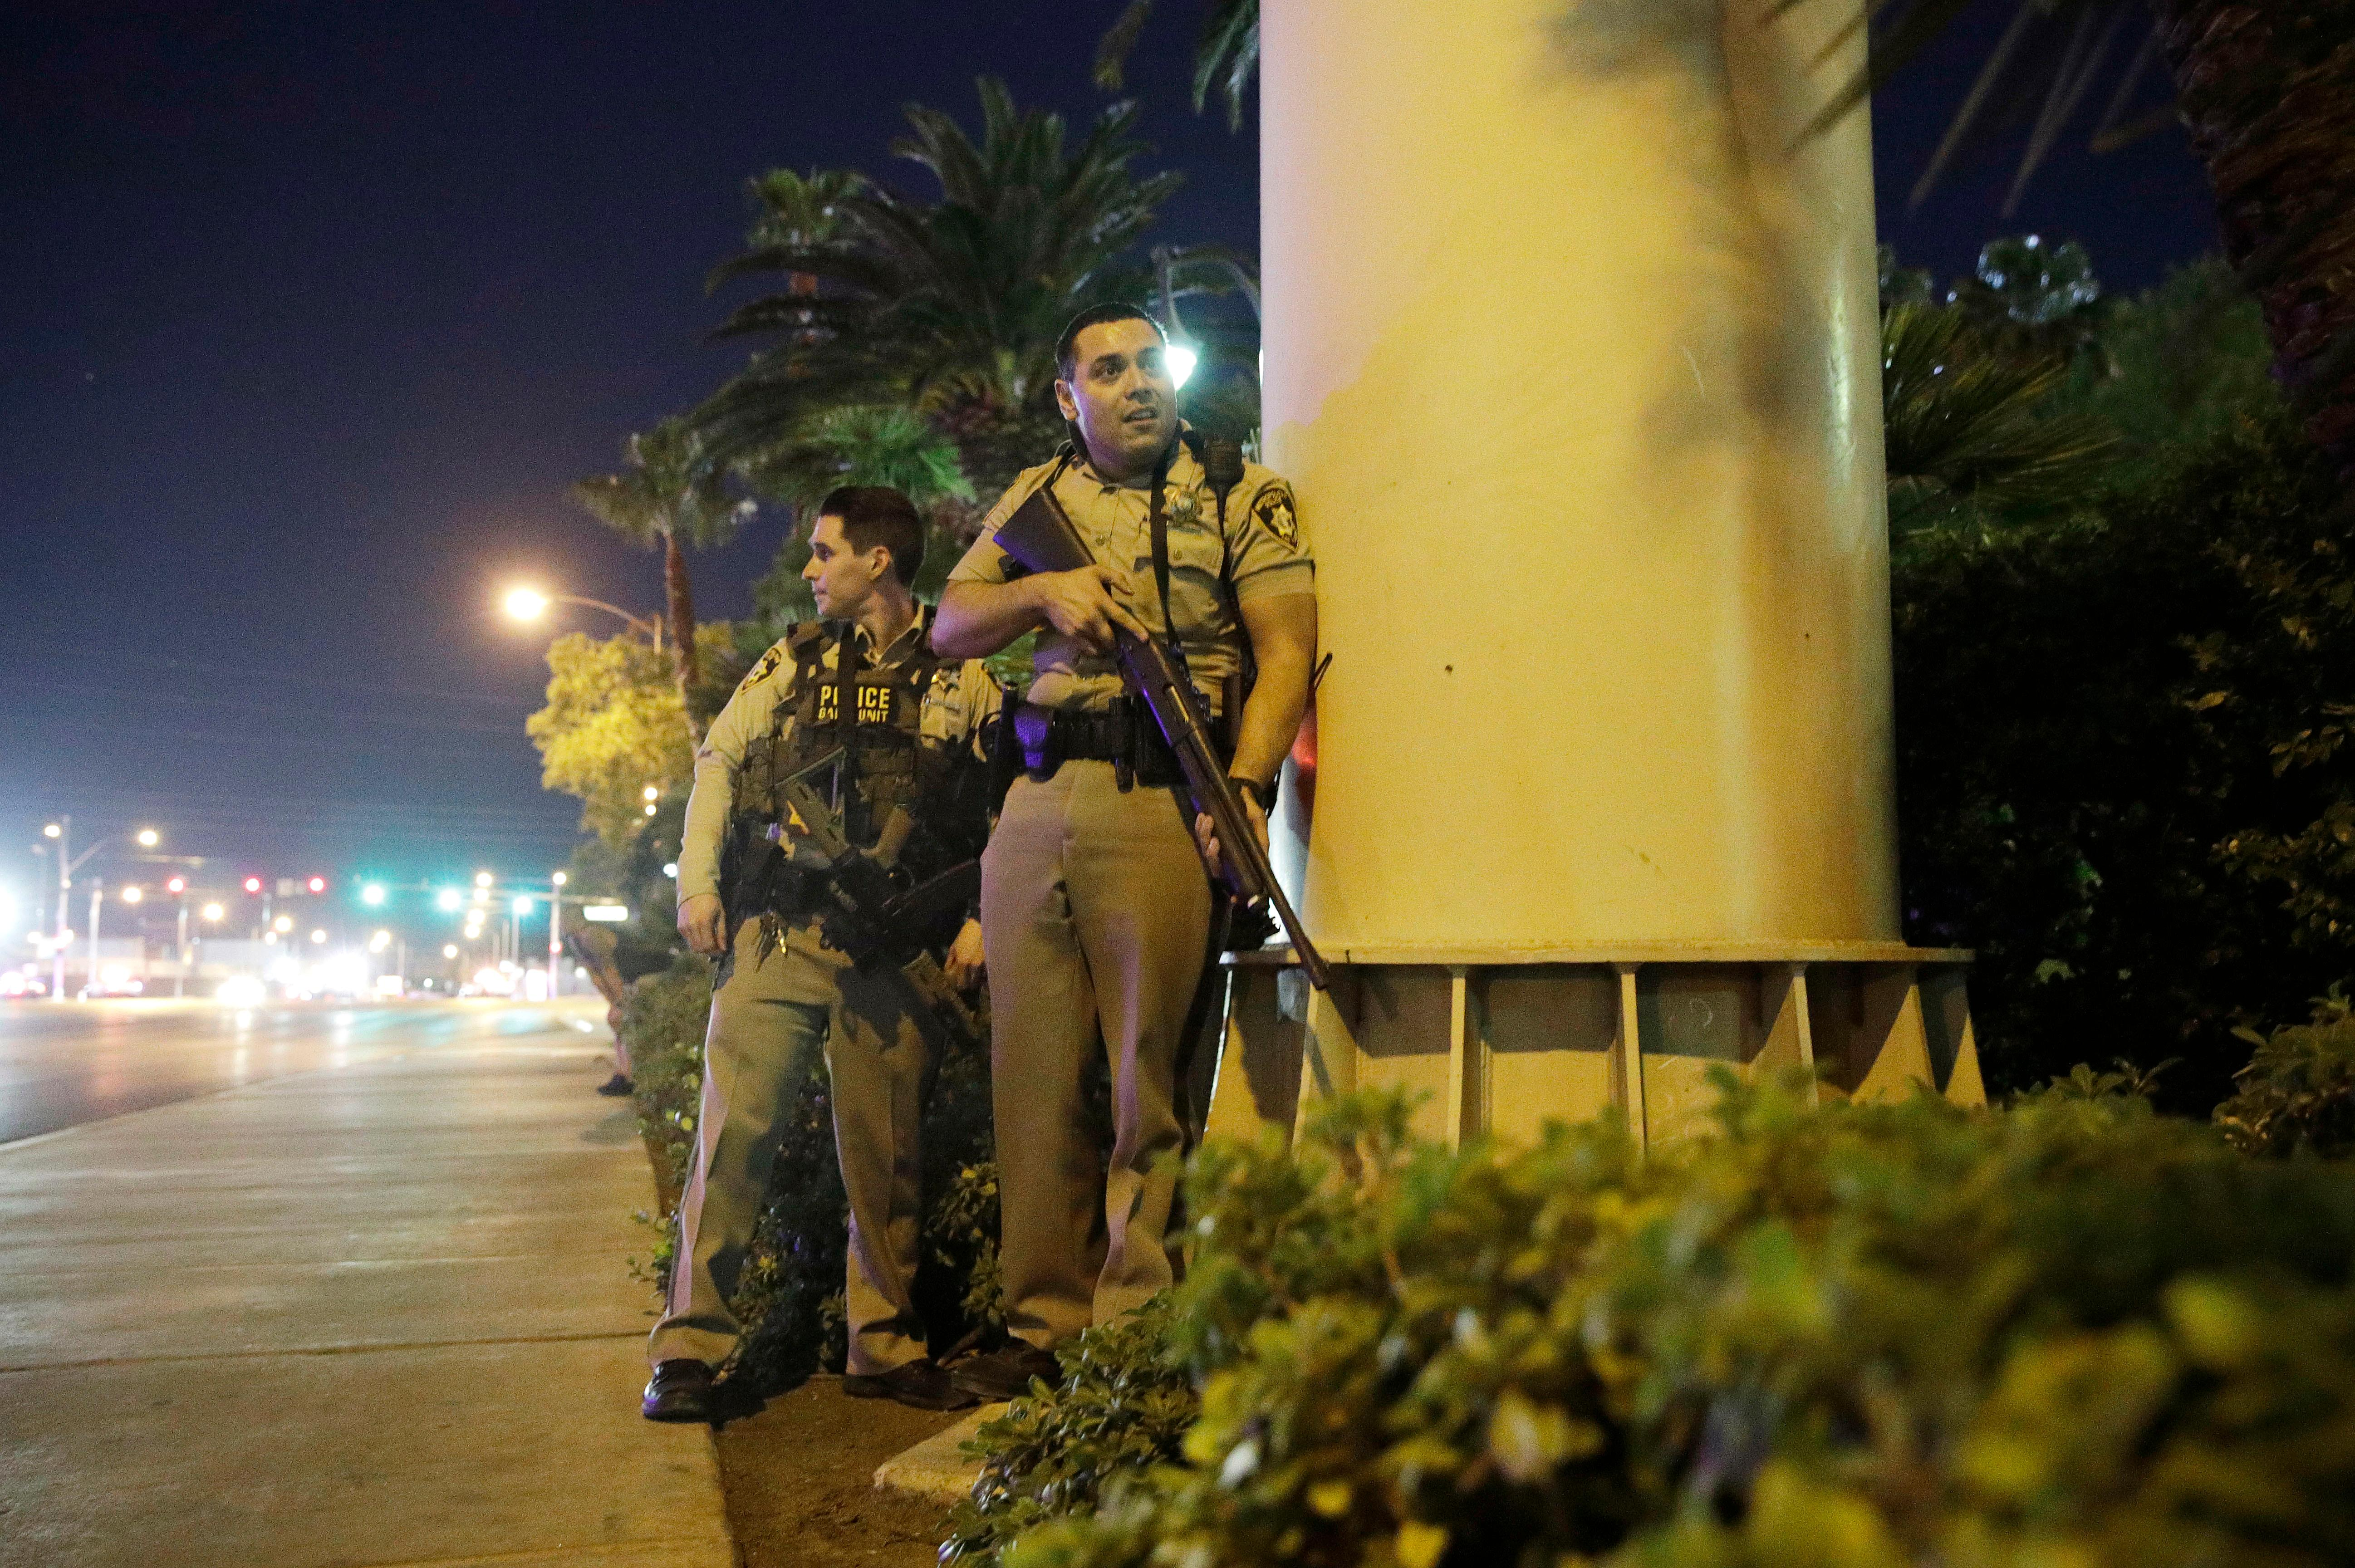 Police officers take cover near the scene of a shooting near the Mandalay Bay resort and casino on the Las Vegas Strip, Sunday, Oct. 1, 2017, in Las Vegas. (AP Photo/John Locher)